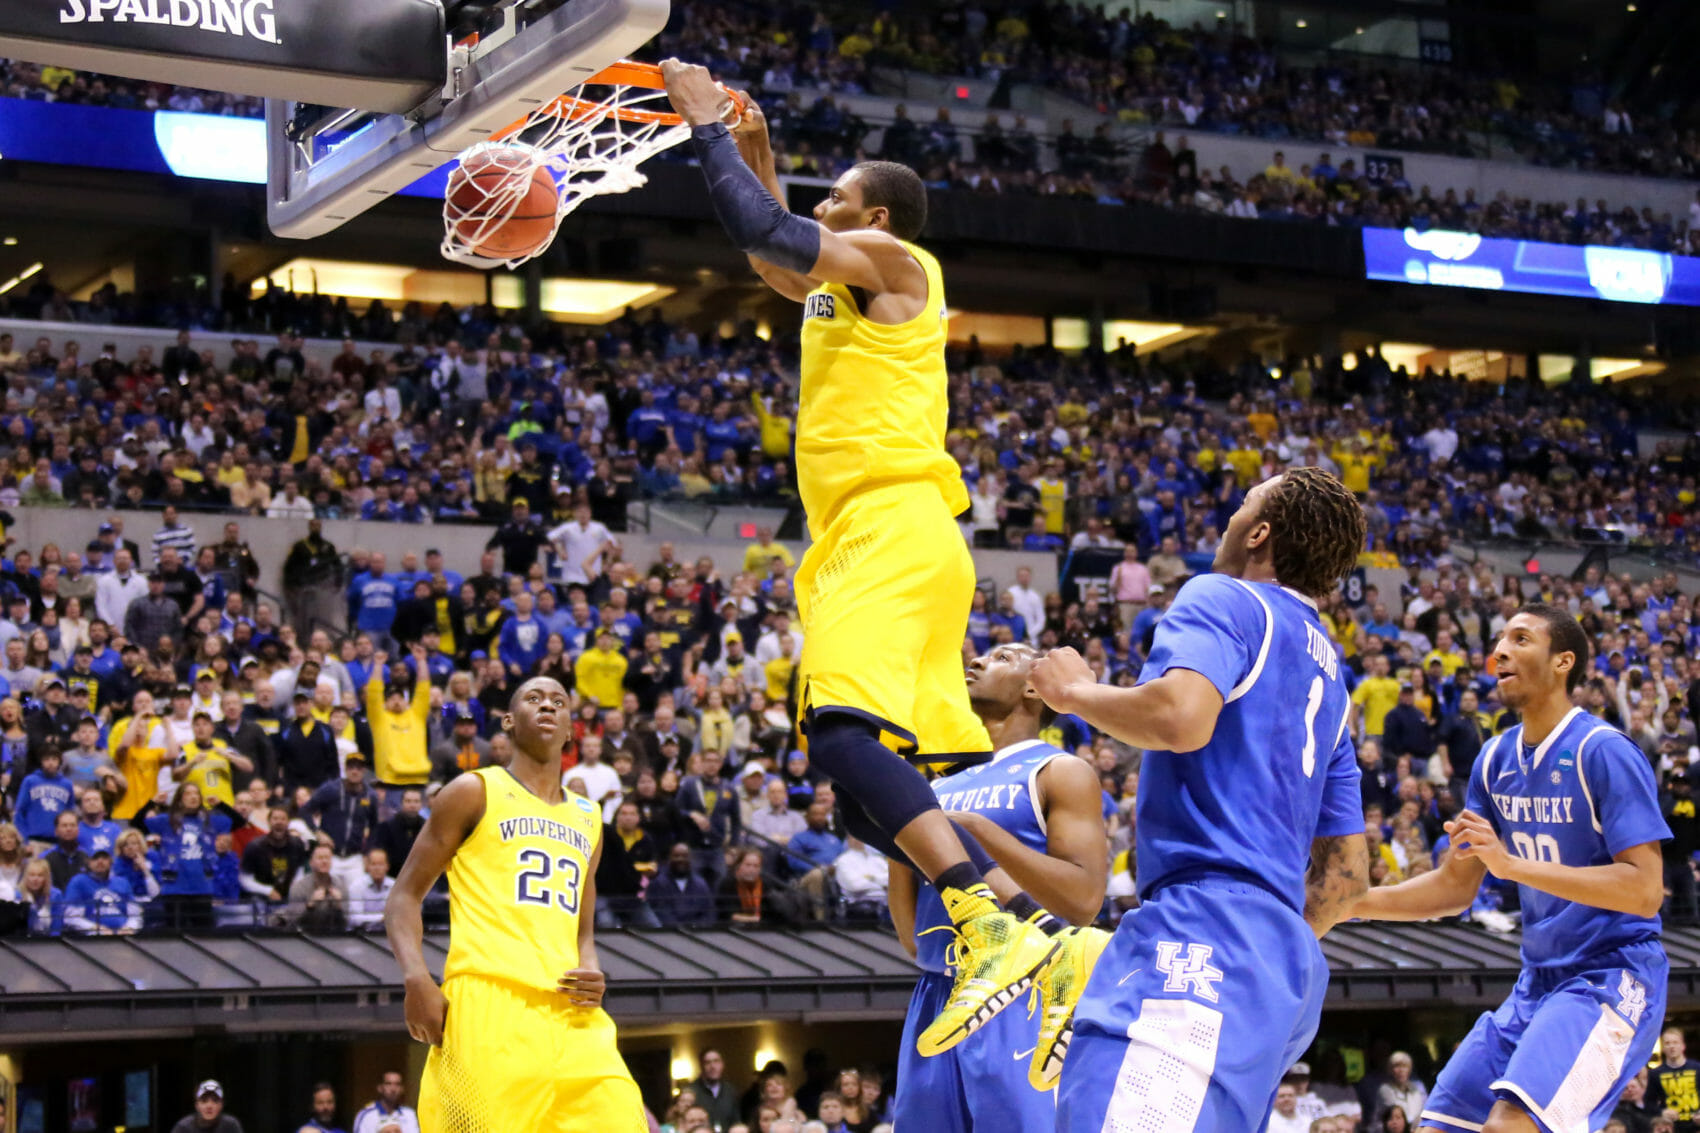 Kentucky 75, Michigan 72-25